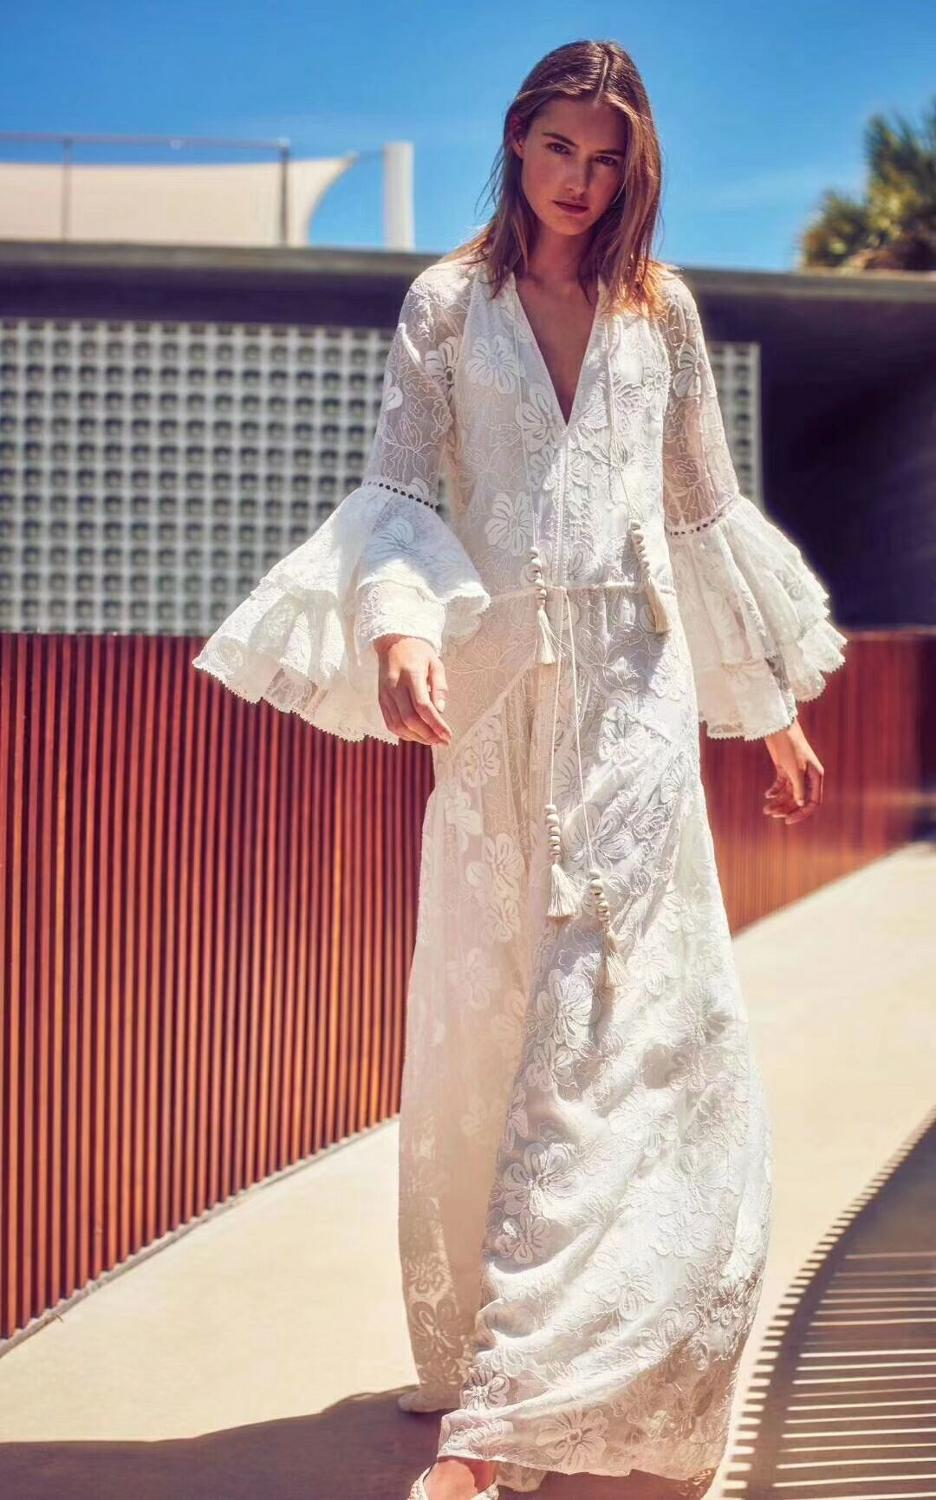 Celebrity Fashion Show Holiday dress V-neck Flare Sleeve Embroidery Lace Lace-Up Backless Sexy Women Body Con Dresses Wholesale